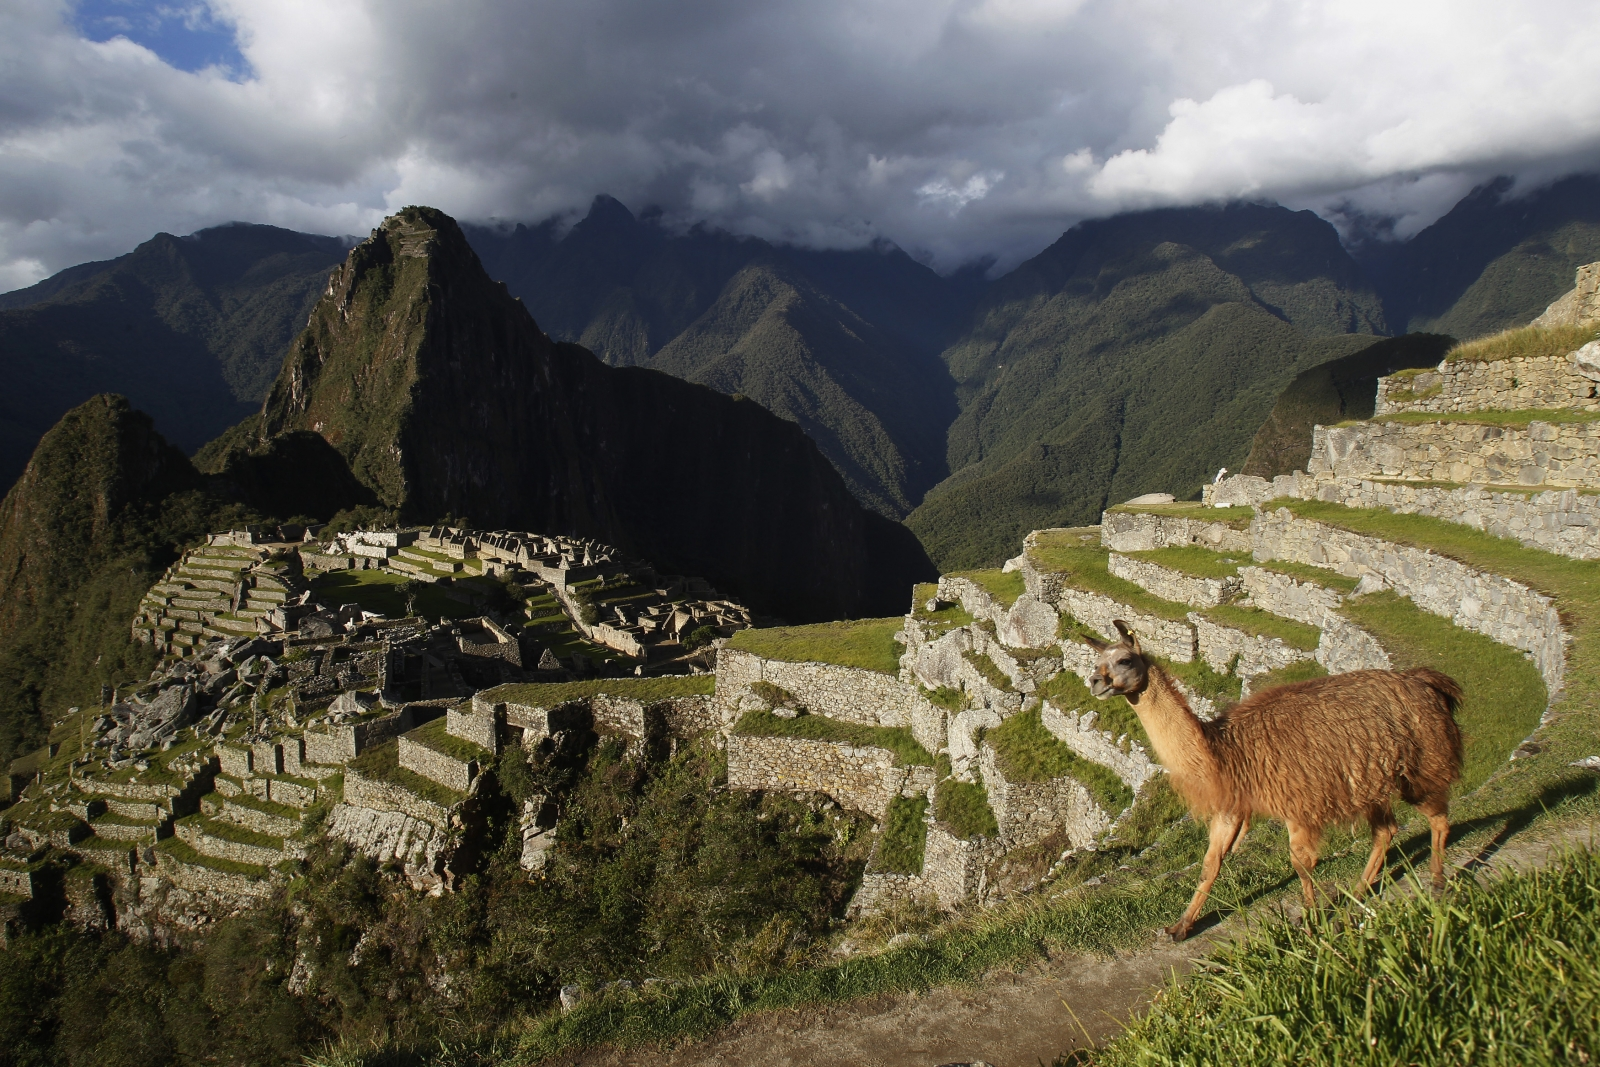 A llama is seen near the Inca citadel of Machu Picchu in Cusco, Peru. Machu Picchu, a UNESCO World Heritage Site, is Peru's top tourist attraction, with the government limiting tourists to 2,500 per day due to safety reasons and concerns over the preserv